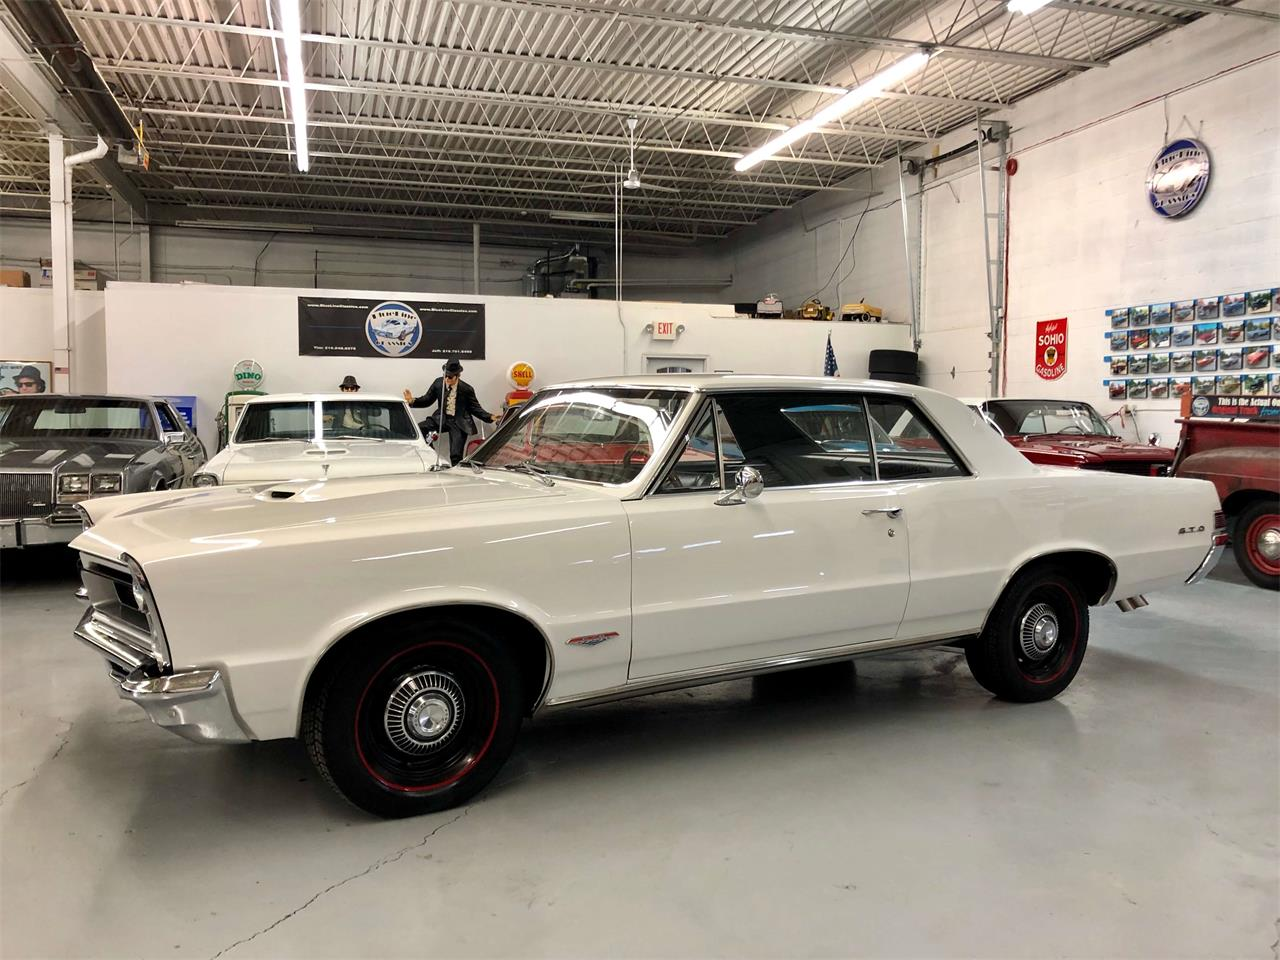 hight resolution of wiring diagram also 1965 pontiac gto convertible for sale further wiring diagram also 1965 pontiac gto convertible for sale further 1965